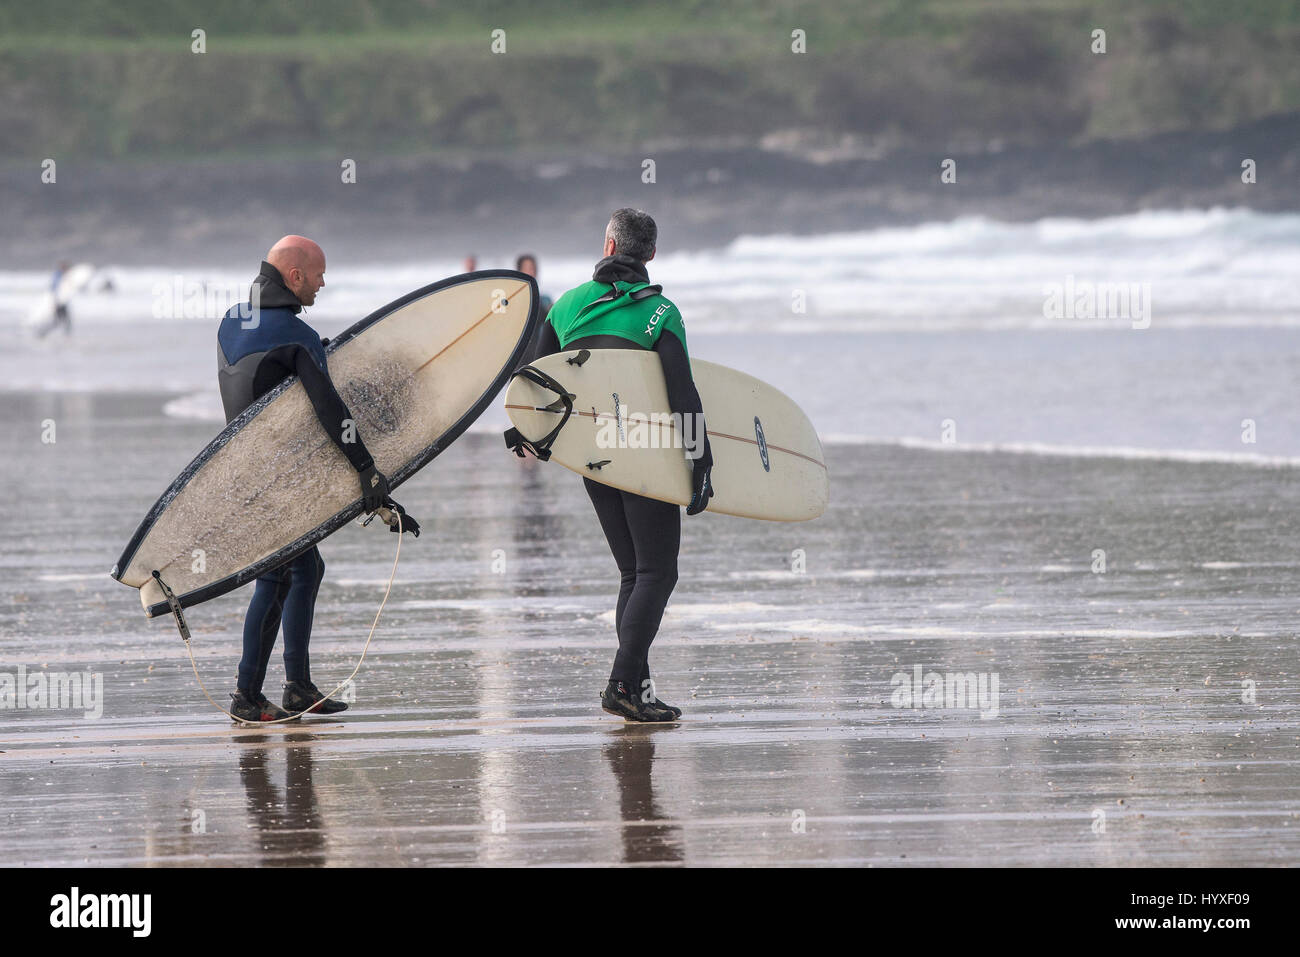 Two surfers carrying surfboards Surfing UK Cornwall Walking Watersport Leisure activity Lifestyle Recreation Friends - Stock Image